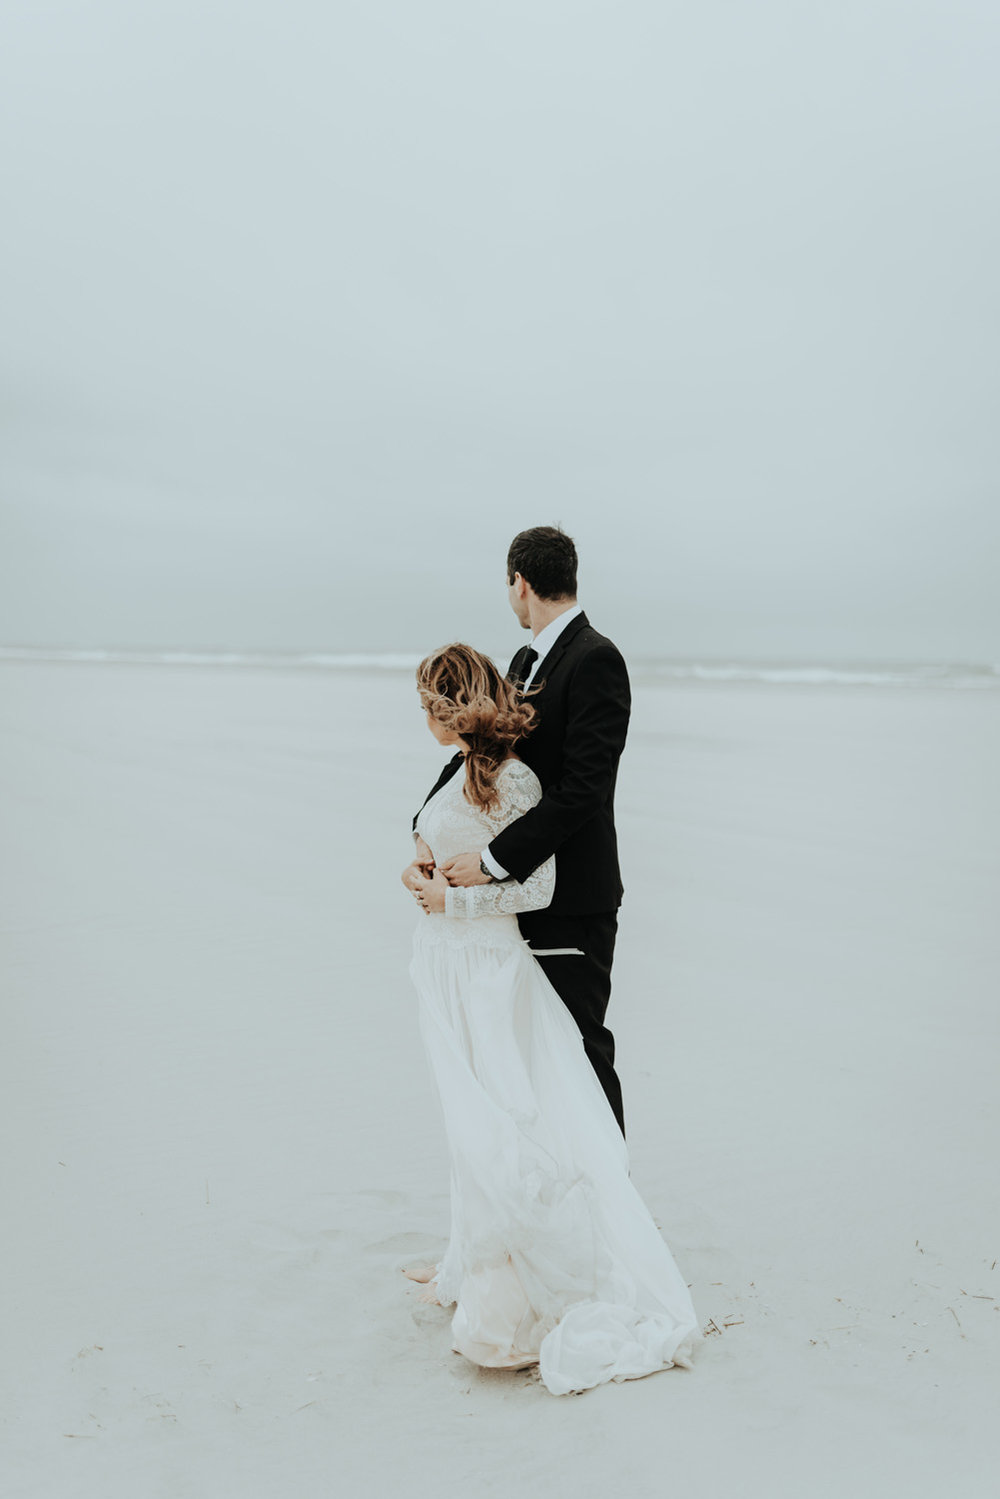 kylewillisphoto_kyle_Willis_Photography_liz_gibbs_brigantine_beach_atlantic_city_wedding_philadelphia_jersey_shore_new_nyc_engagement_delaware_engaged_married_rainy_photos_ac_boho1.jpg